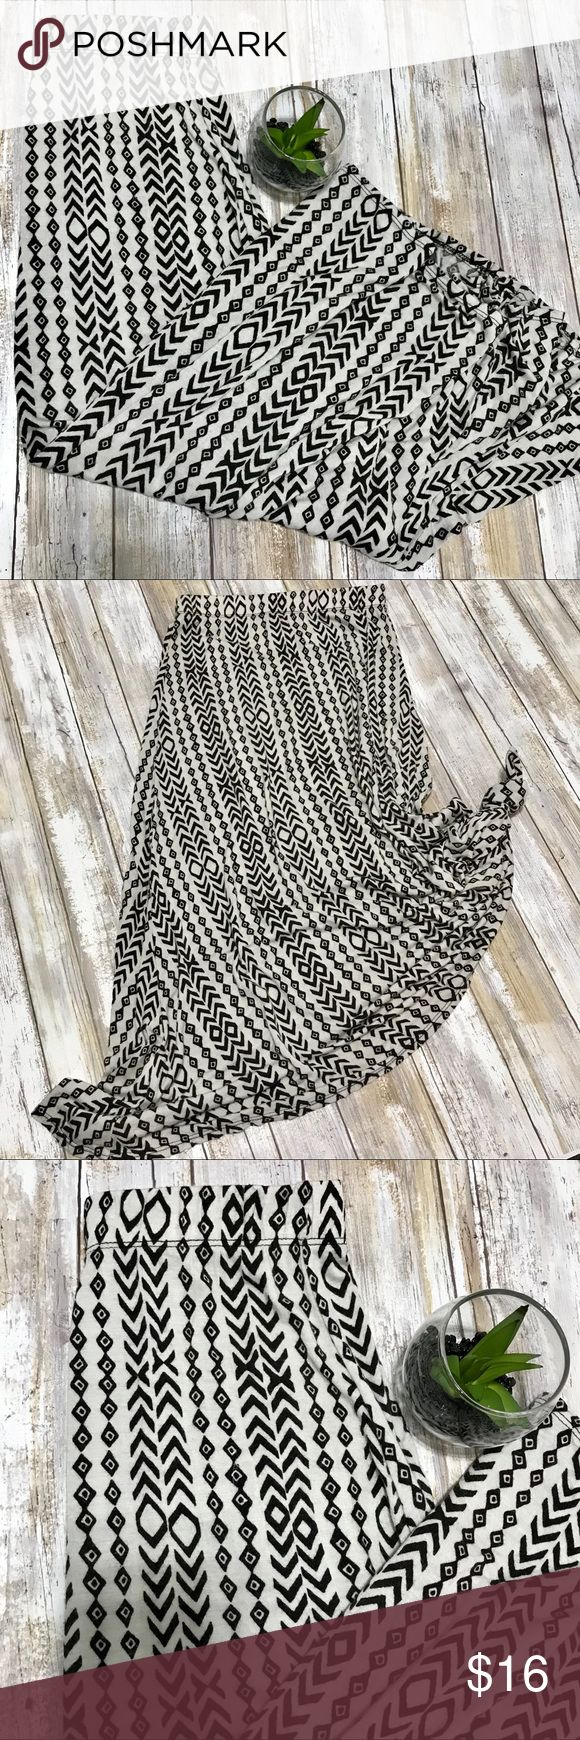 ‼️Lularoe Kids Size 10 Maxi Skirt. TRIBAL‼️ A1 19 Lularoe Kids Size 10 Maxi Skirt  Tribal print. Cream backdrop w all black tribal design! Super cute!! And it's beyond soft and stretchy!!! Super comfortable!! Feels like Leggings material!!  Great Condition. 1' Elastic waistband  Length 30'  A1 19 LuLaRoe Bottoms Skirts